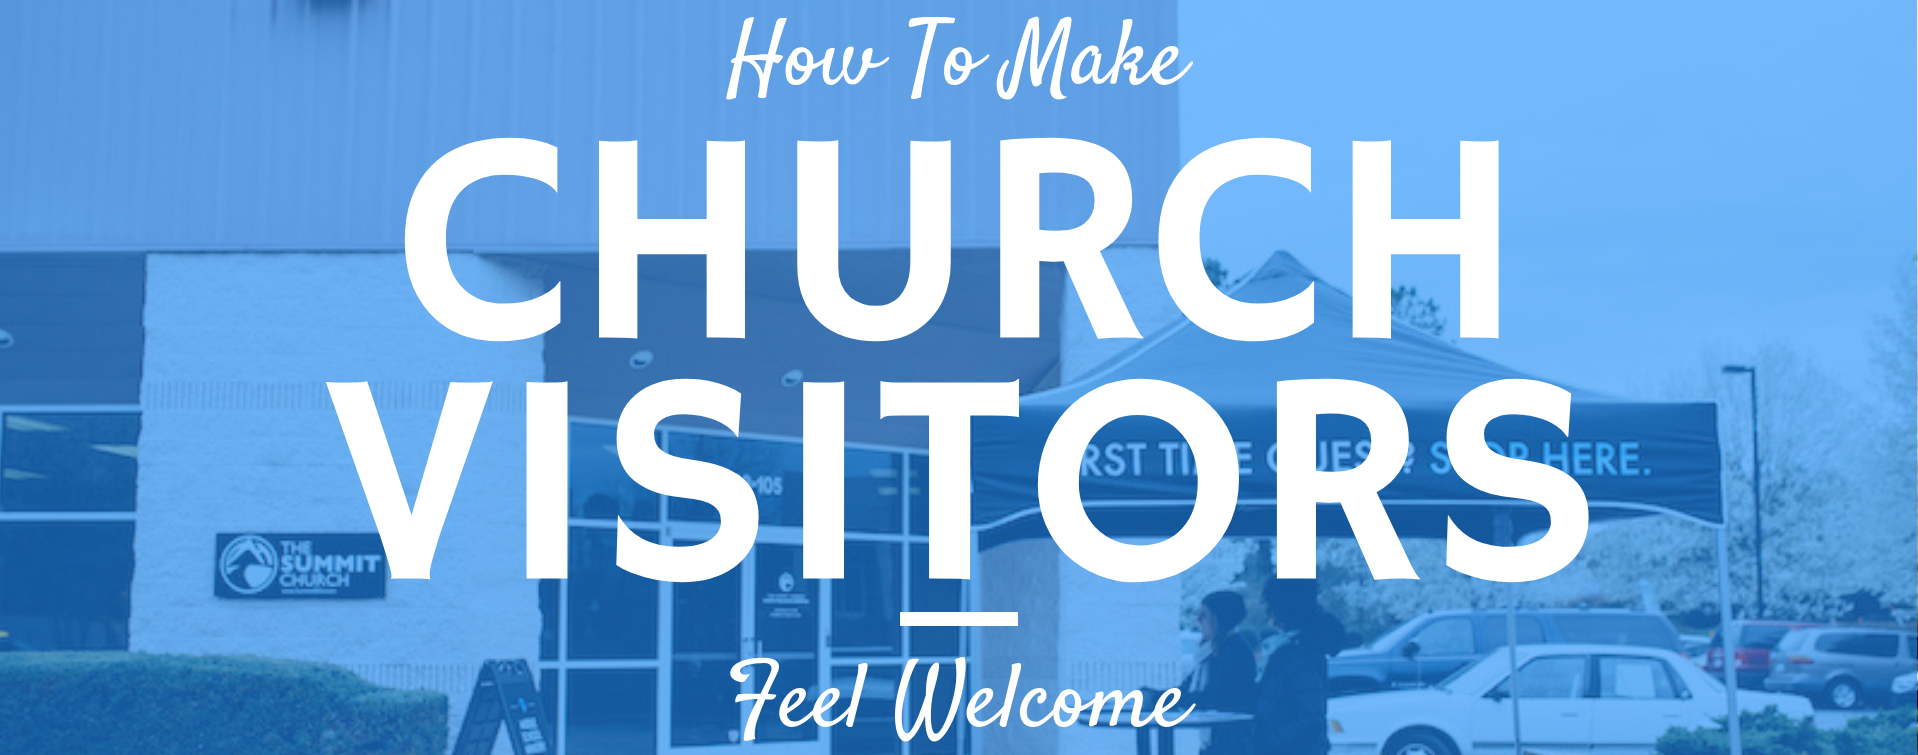 How to make church visitors feel welcome 10 step guide m4hsunfo